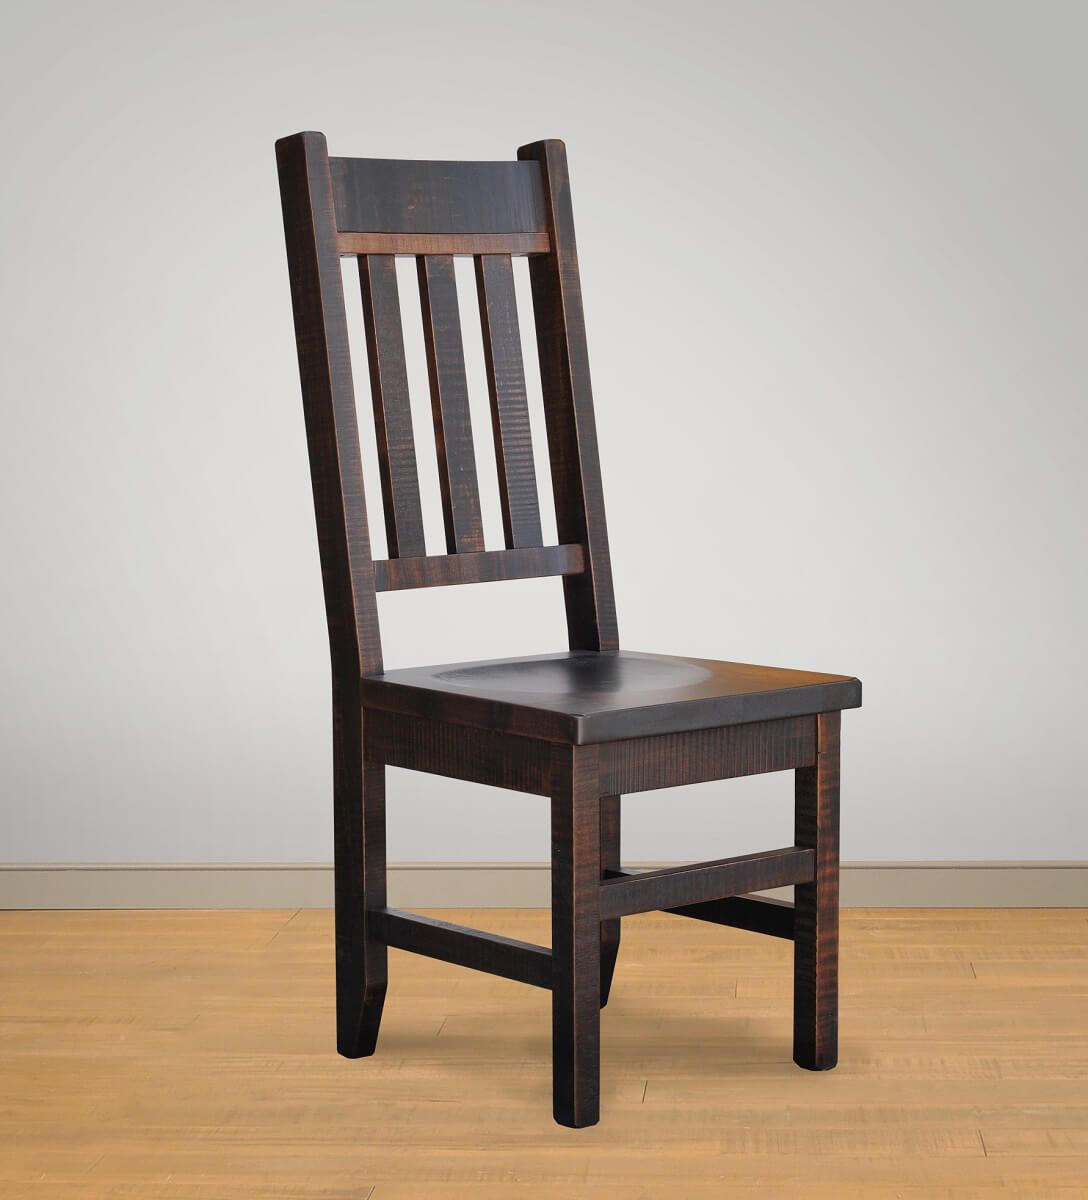 Deep Creek Rustic Chair